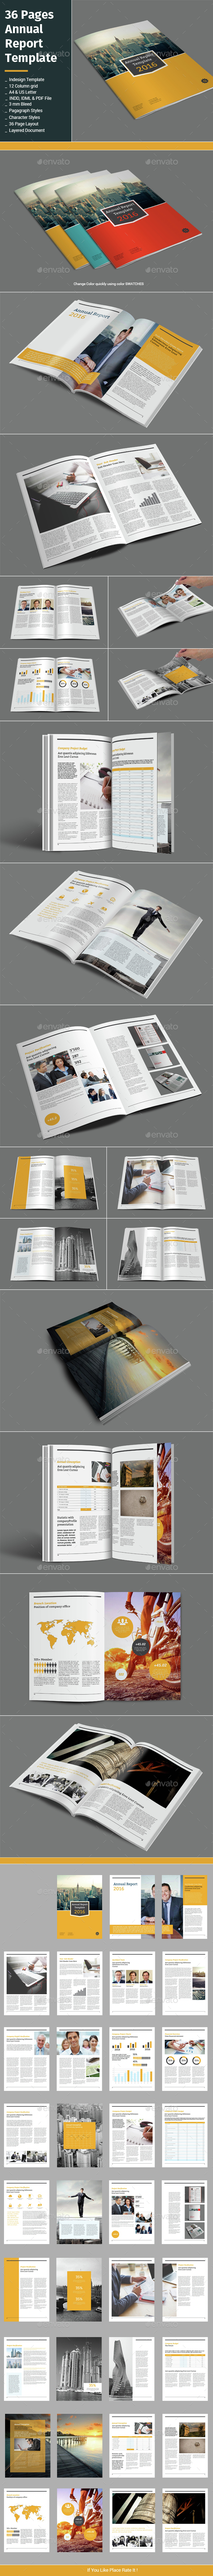 36 Pages Annual Report Tmeplate - Informational Brochures